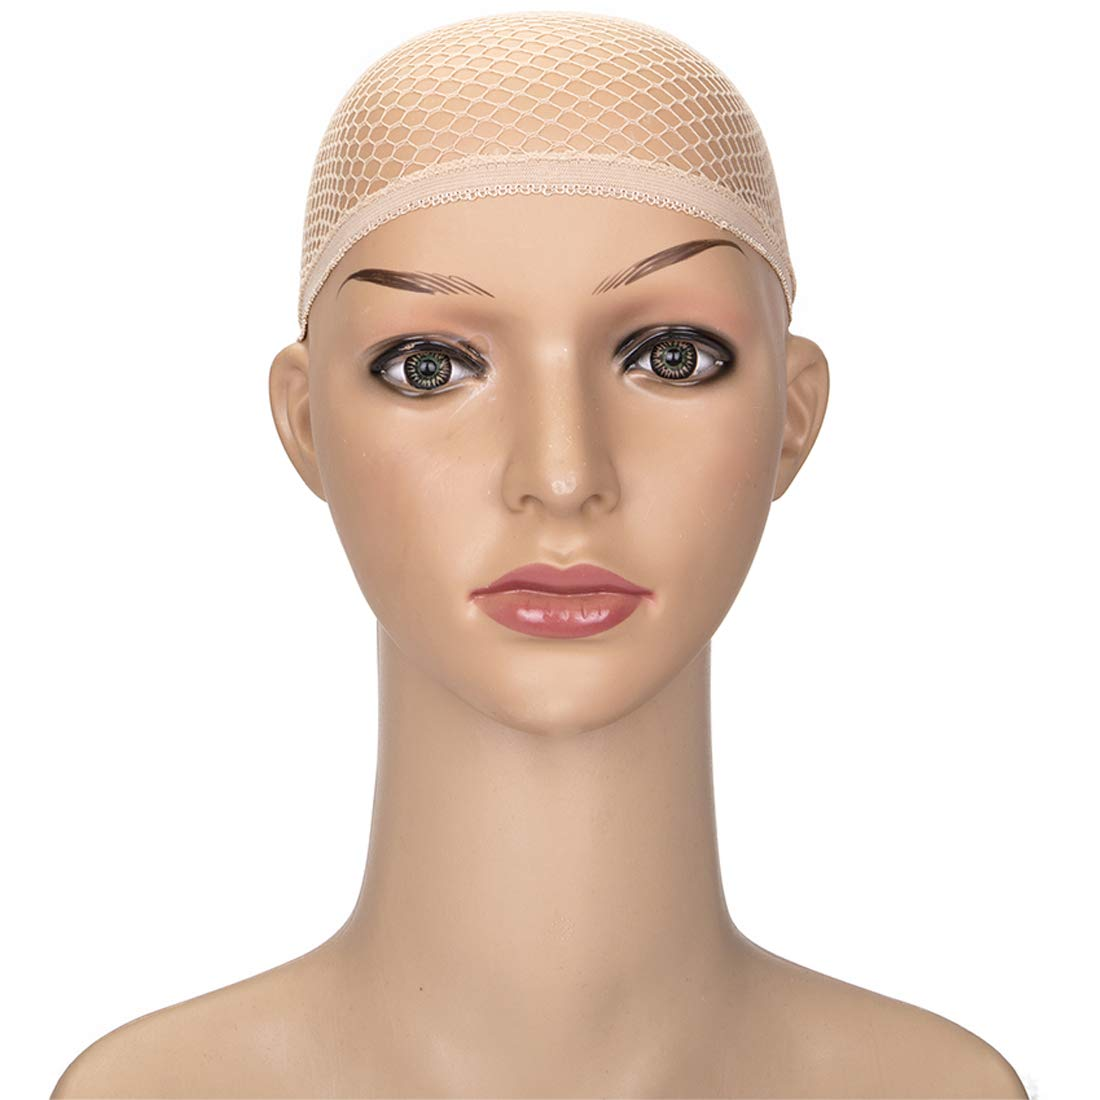 3 Pack Nylon Hair Net Wig Caps Stretchable Net Mesh Fishnet Elastic Snood Cap(Skin) by FOCUSSEXY (Image #2)